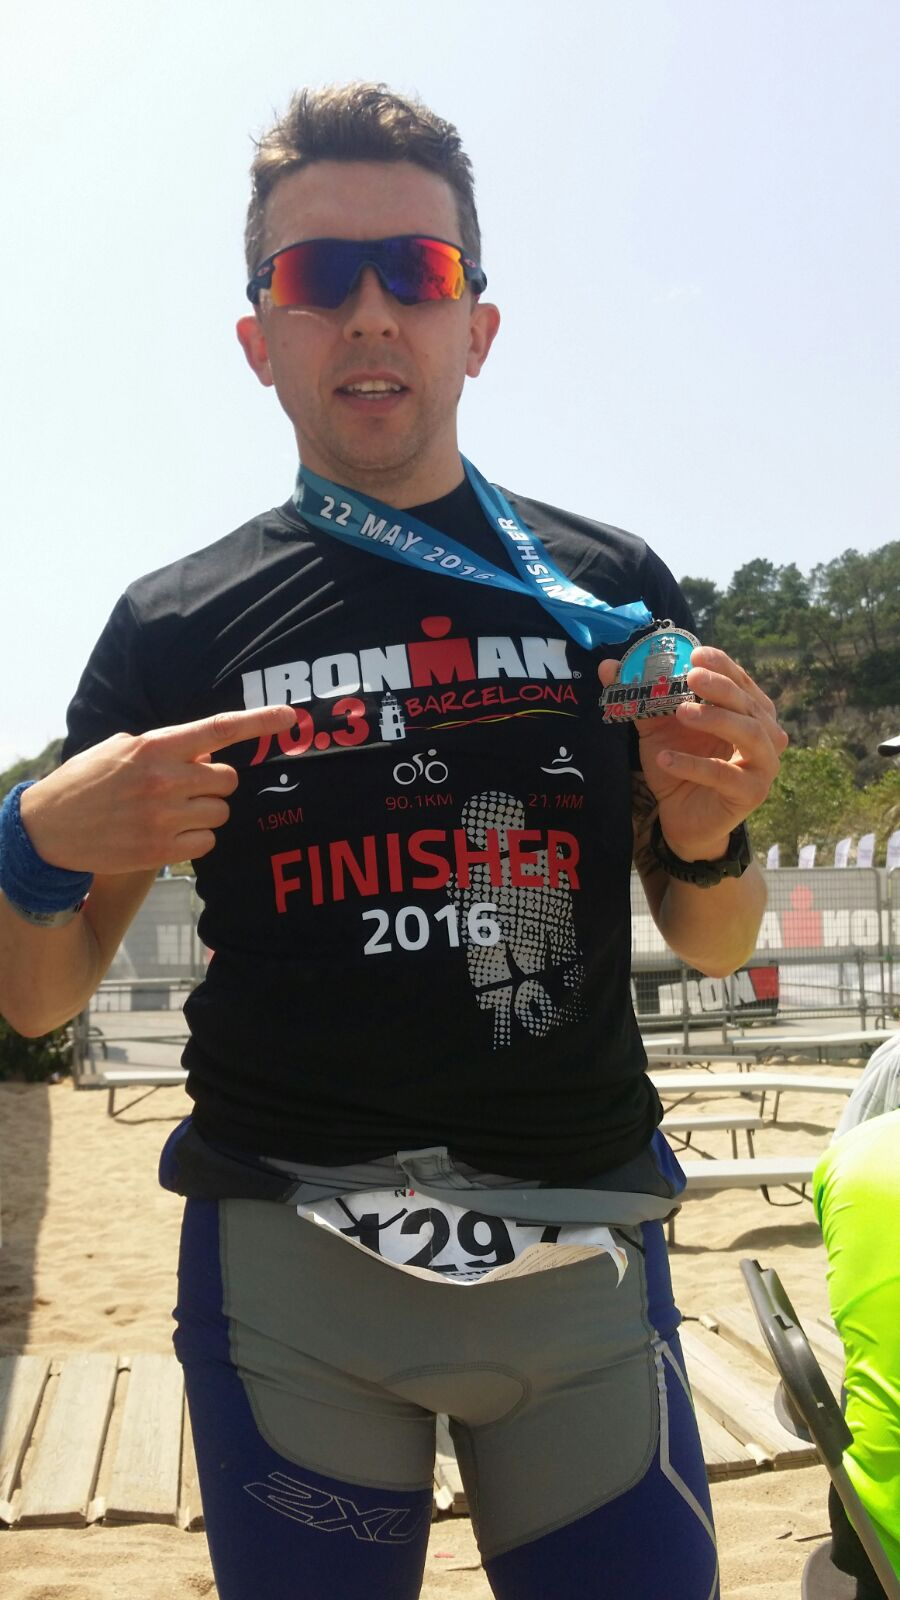 Proud to be strong enough to finish another 70.3 mile IRONMAN race iN Barcelona